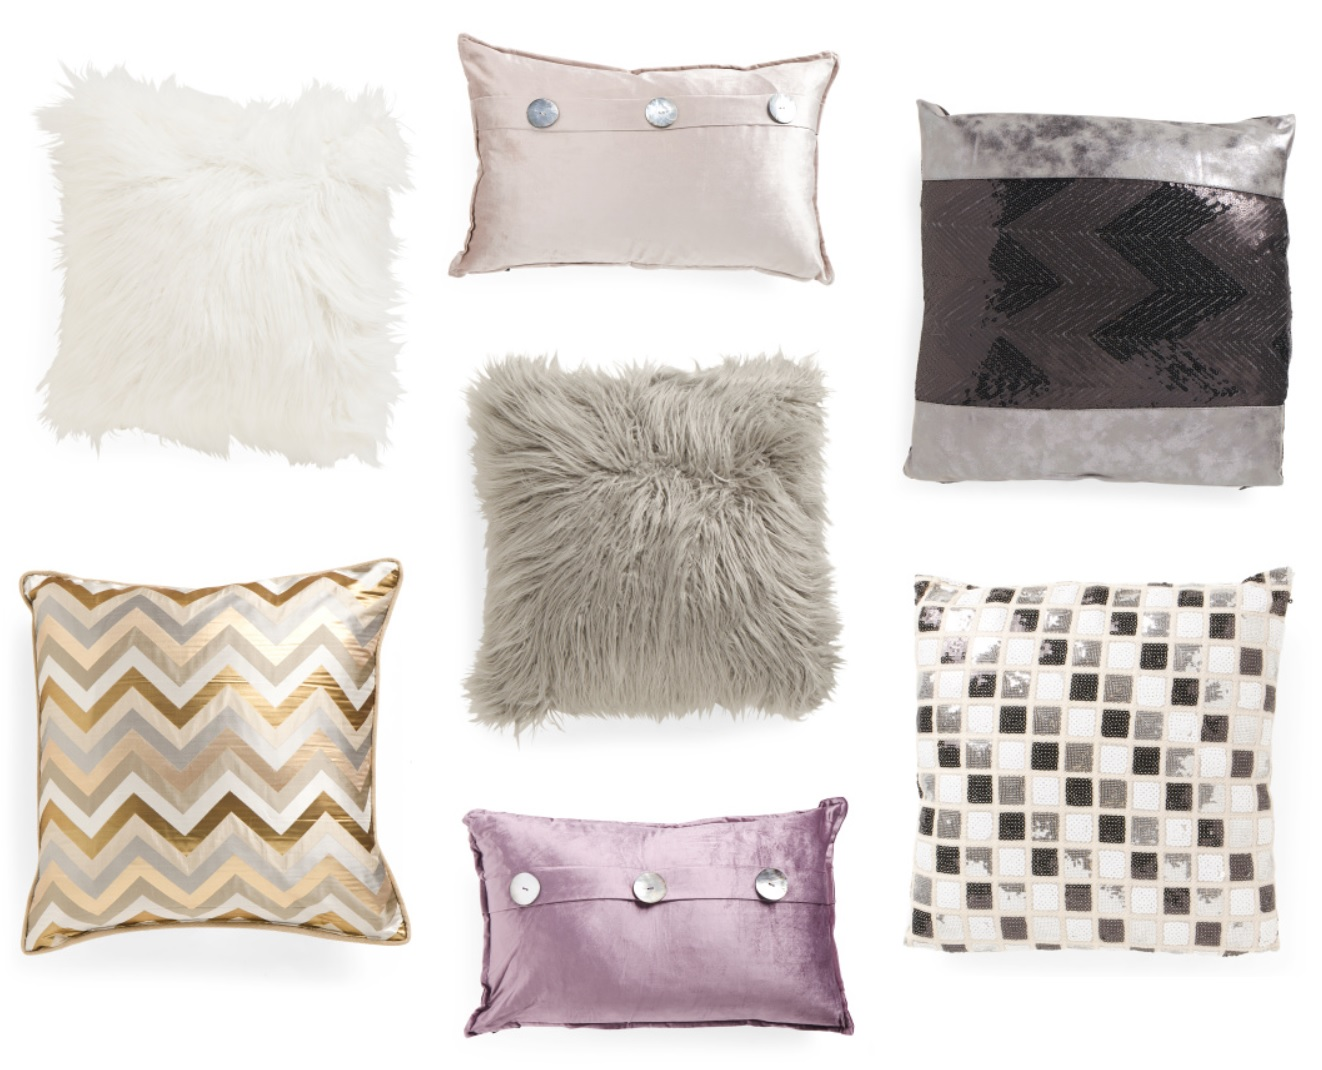 Decorative Pillows At Tj Maxx : TJ Maxx: Couch/Throw Pillows From $16.99 + Free Shipping Kollel Budget